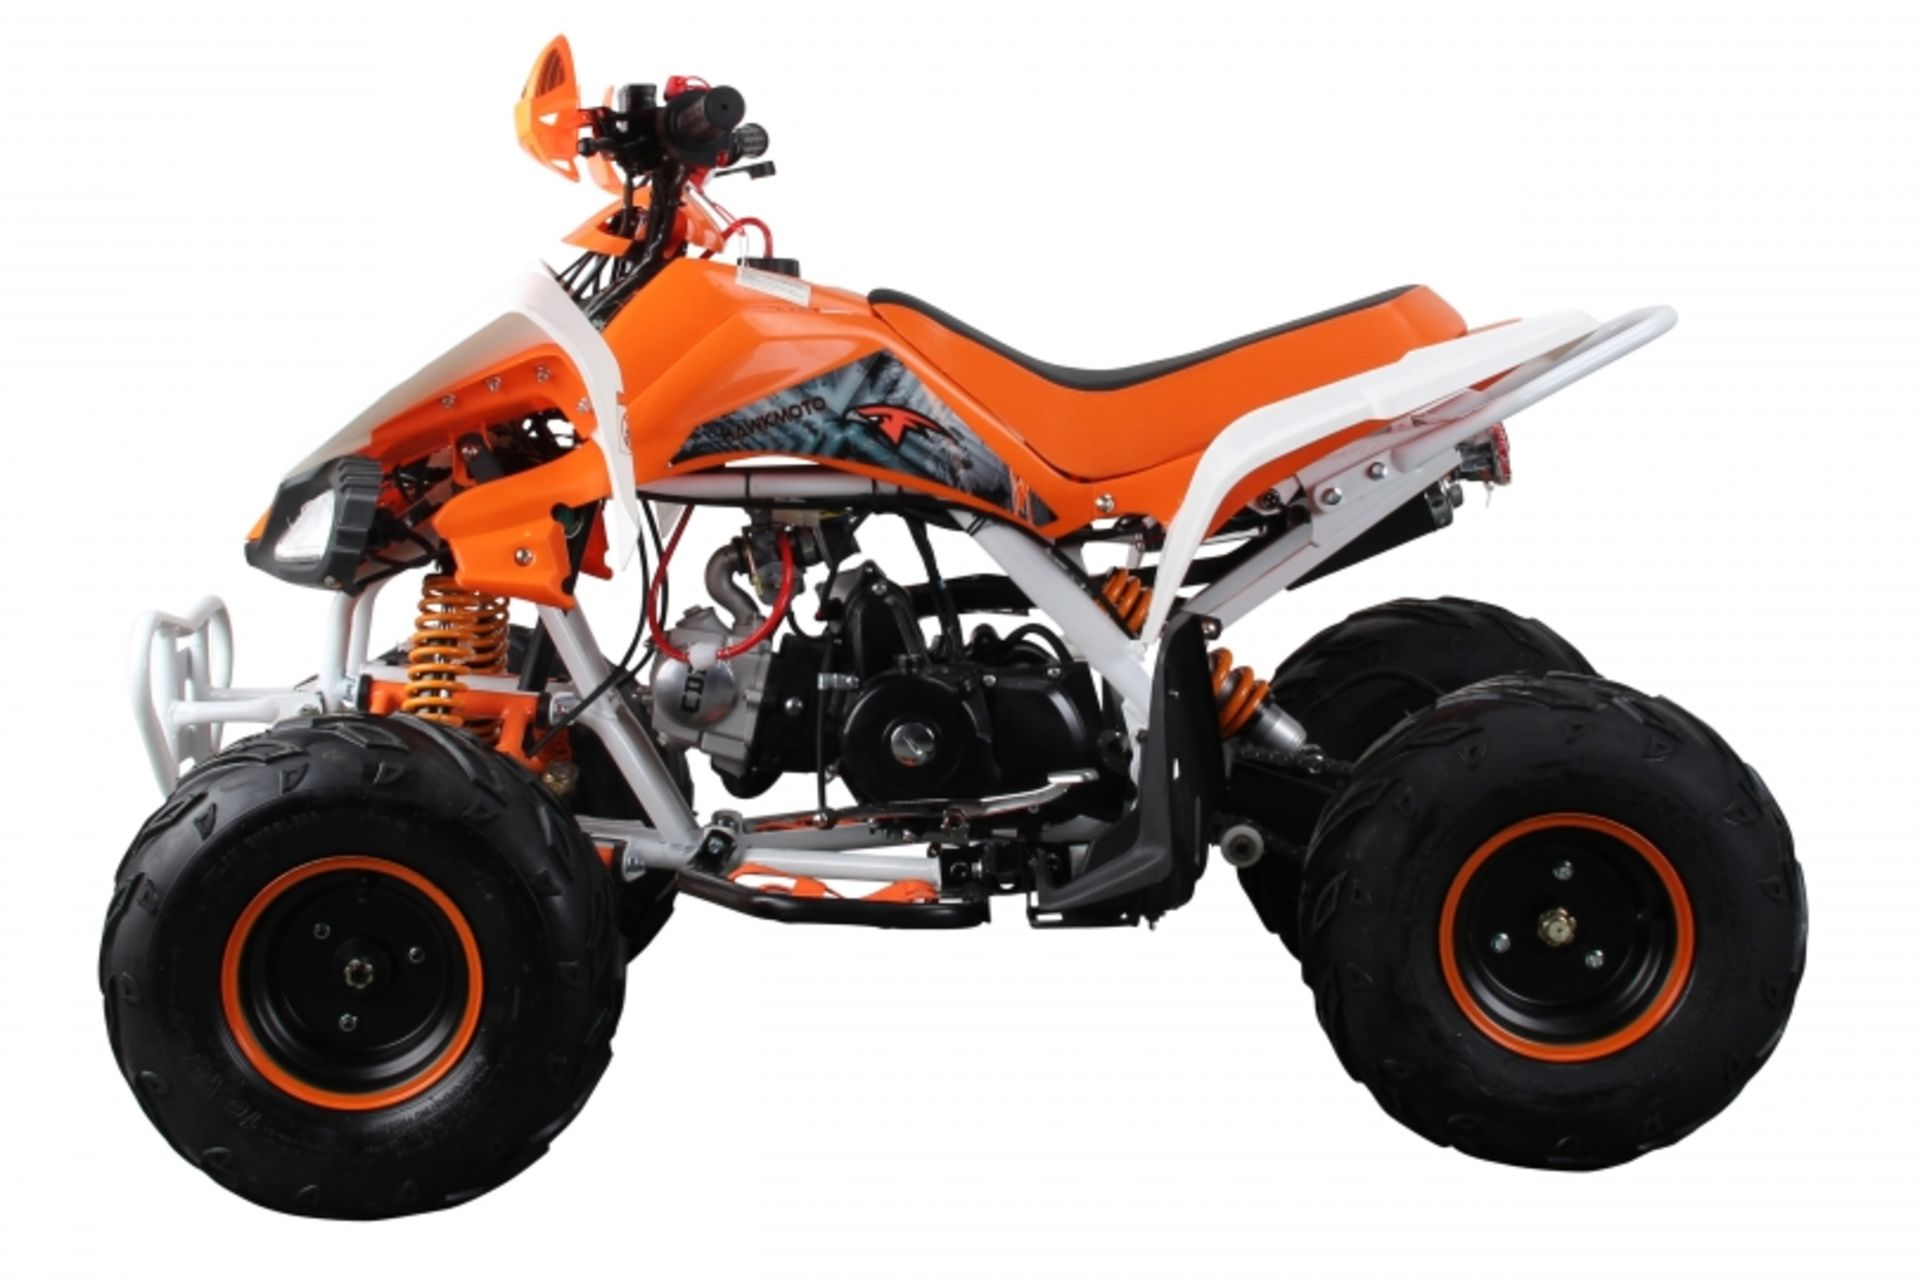 Lot 23528 - V Brand New 125cc Interceptor SV2 4 Stroke Quad Bike With Reverse Gear - Double Front Suspension/